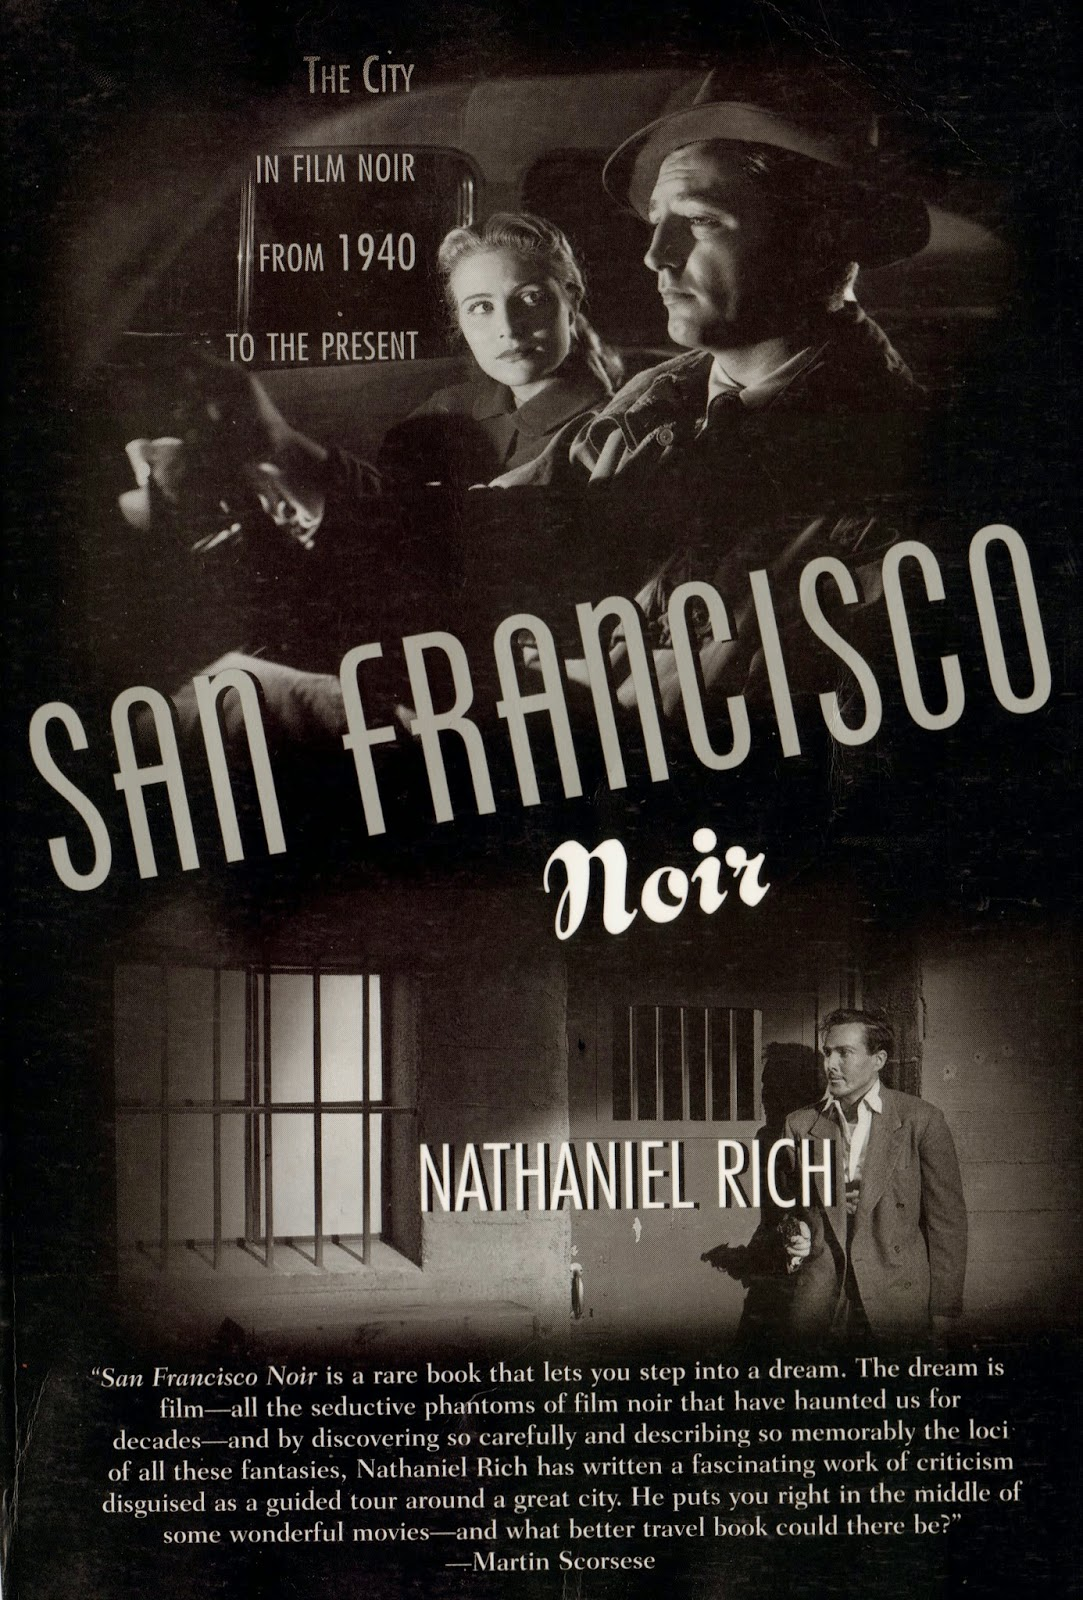 San Francisco Nor by Nathaniel Rich